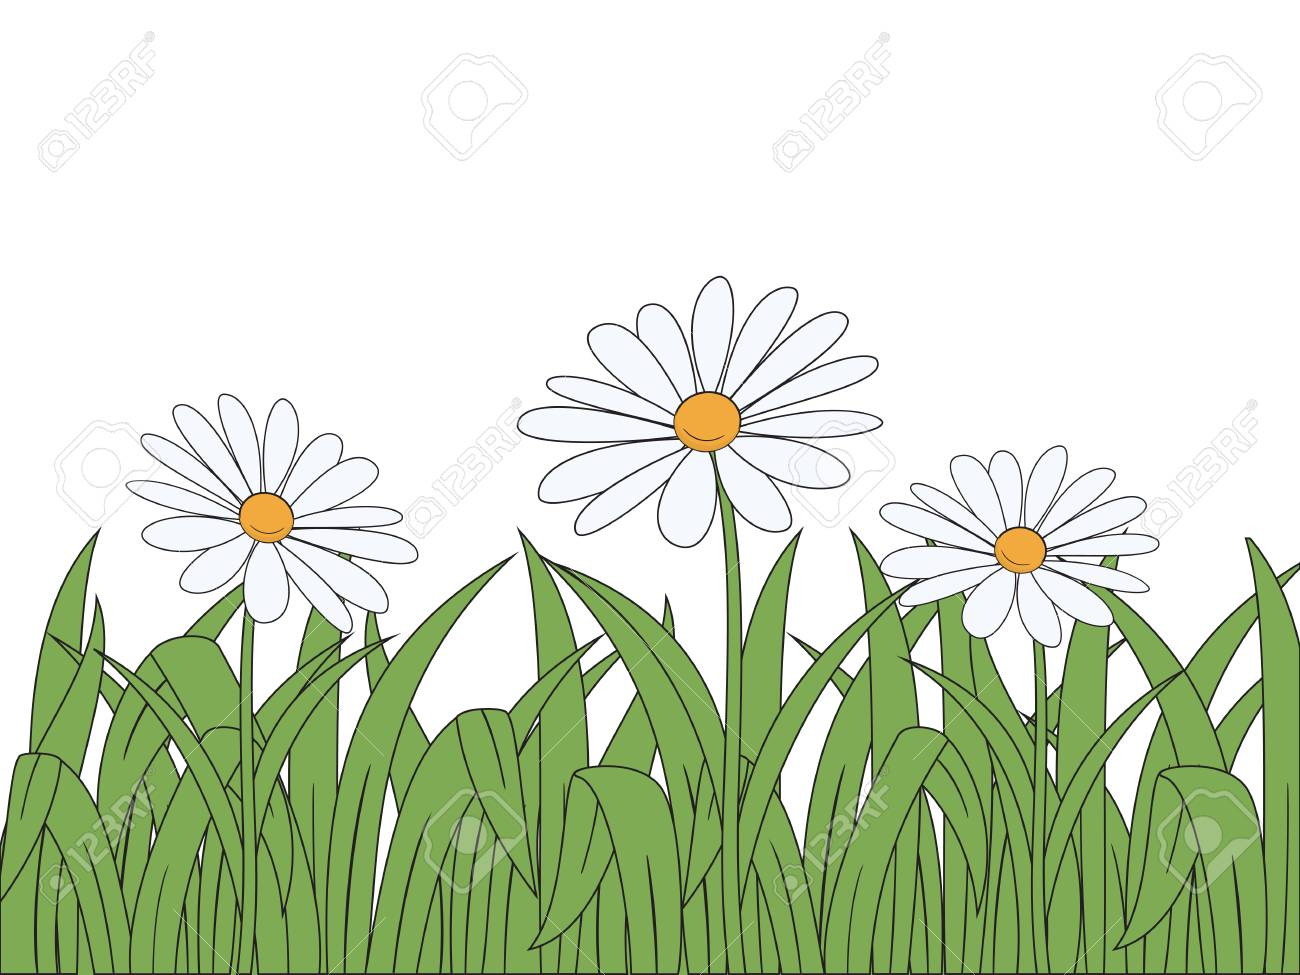 Cartoon flowers and grass on white background  Vector illustration